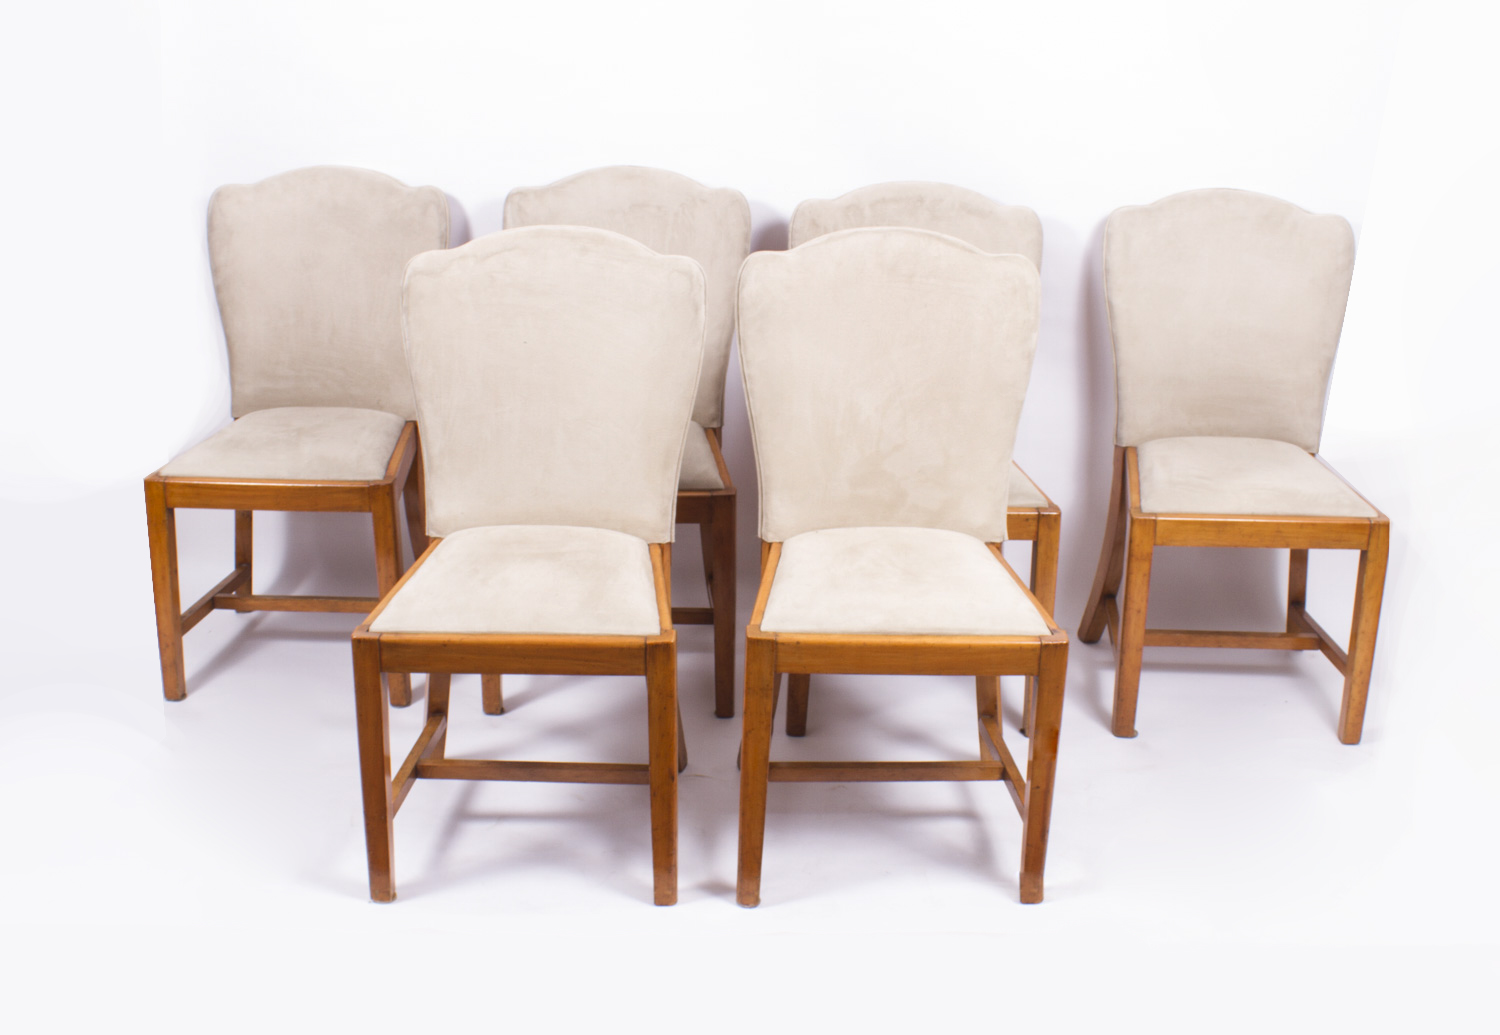 Antique set 6 walnut art deco dining chairs epstein c1930 - Epstein art deco furniture ...